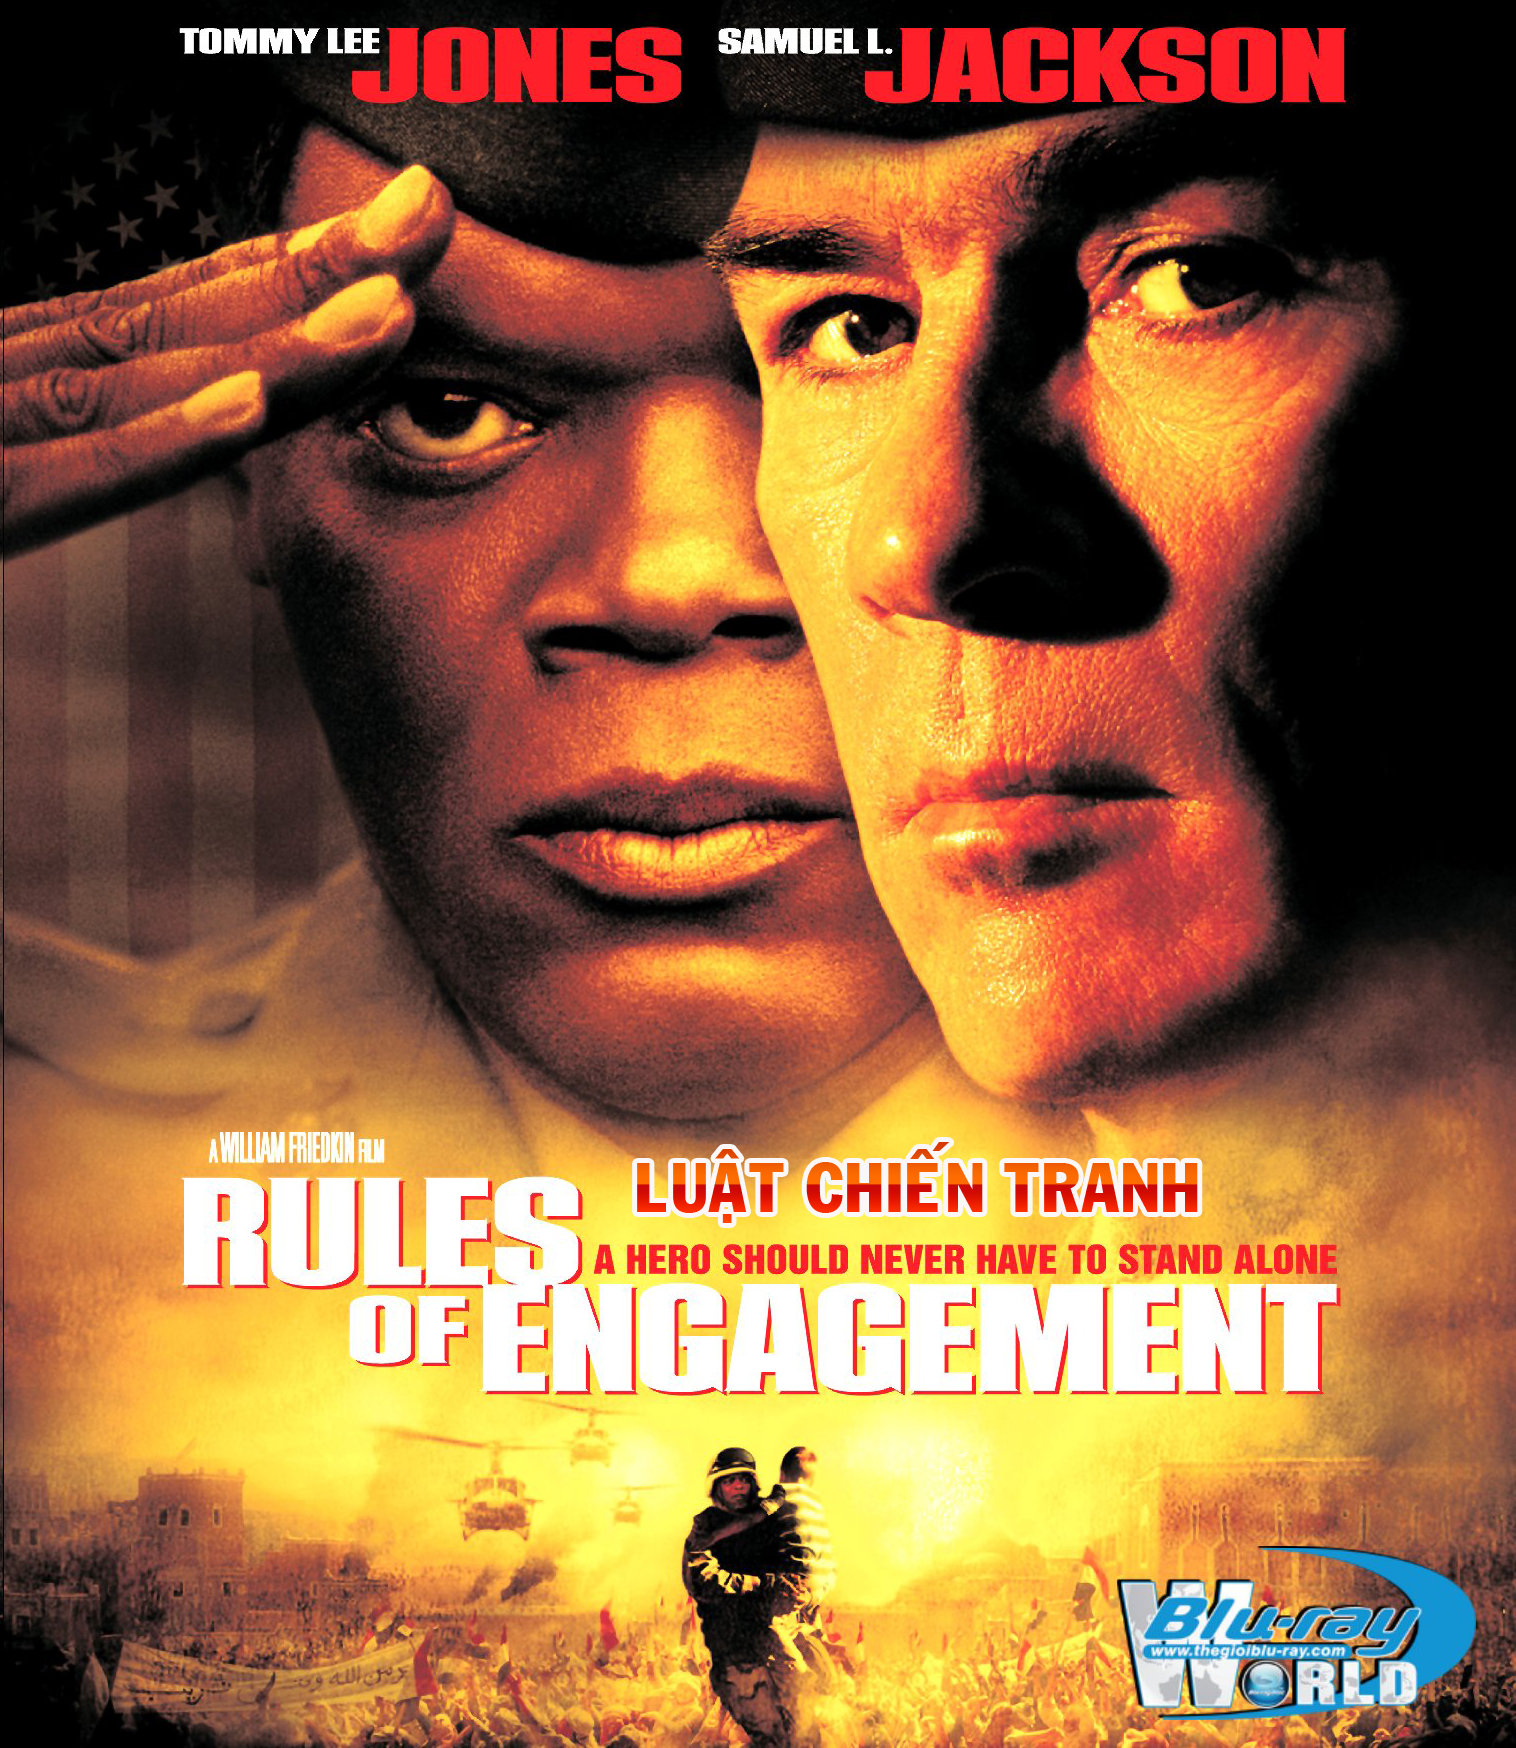 B1719. Rules Of Engagement - LUẬT CHIẾN TRANH 2D 25G (DTS-HD MA 5.1)